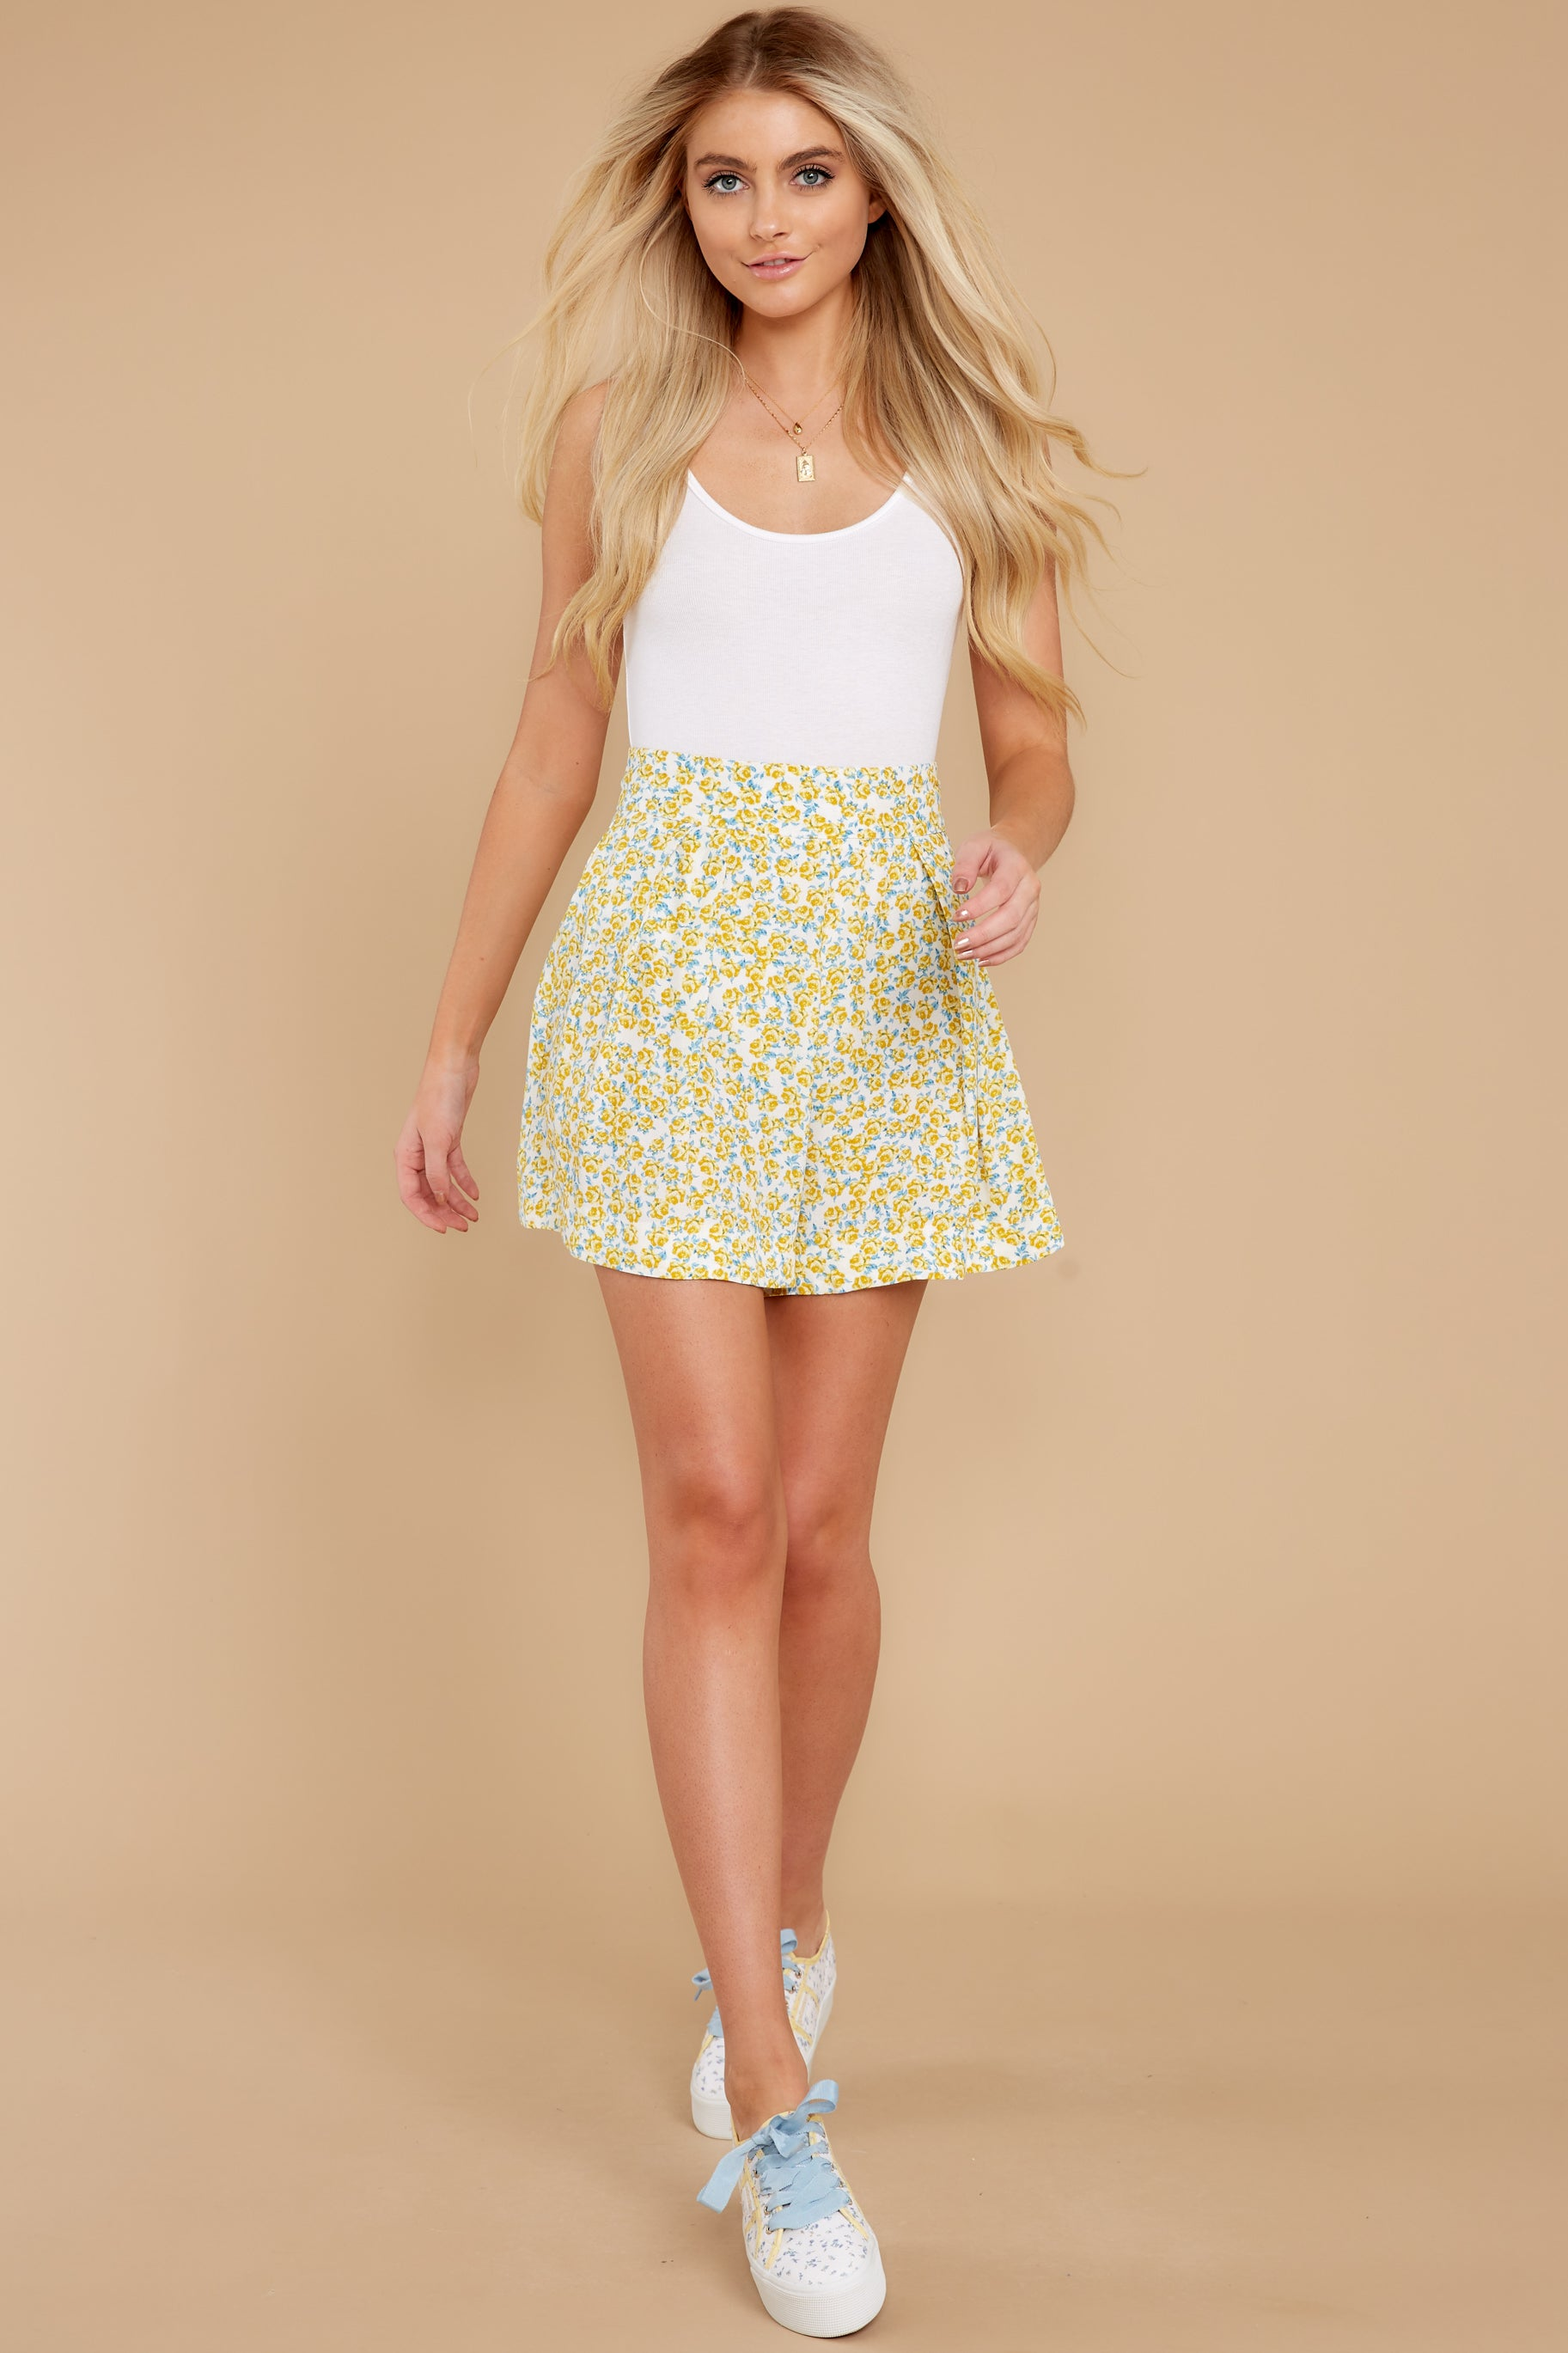 6 My Flawless Yellow Floral Print Skirt at reddress.com